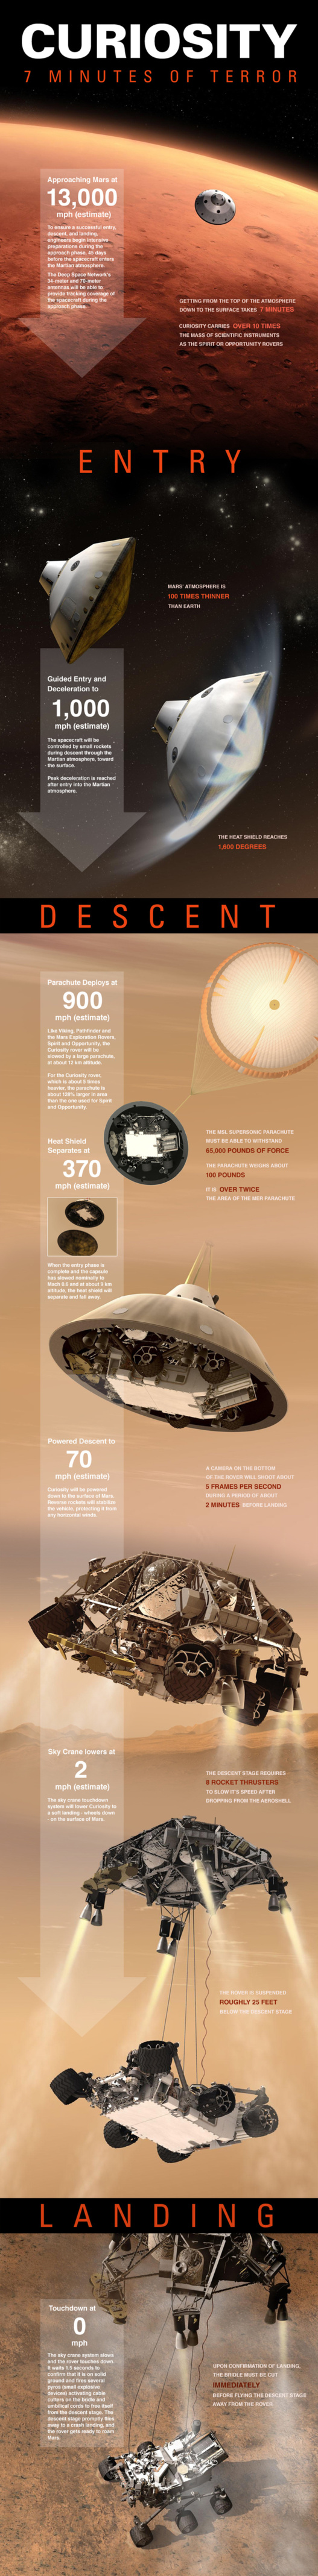 L'atterrissage de Curiosity sur Mars expliqu en 1 image